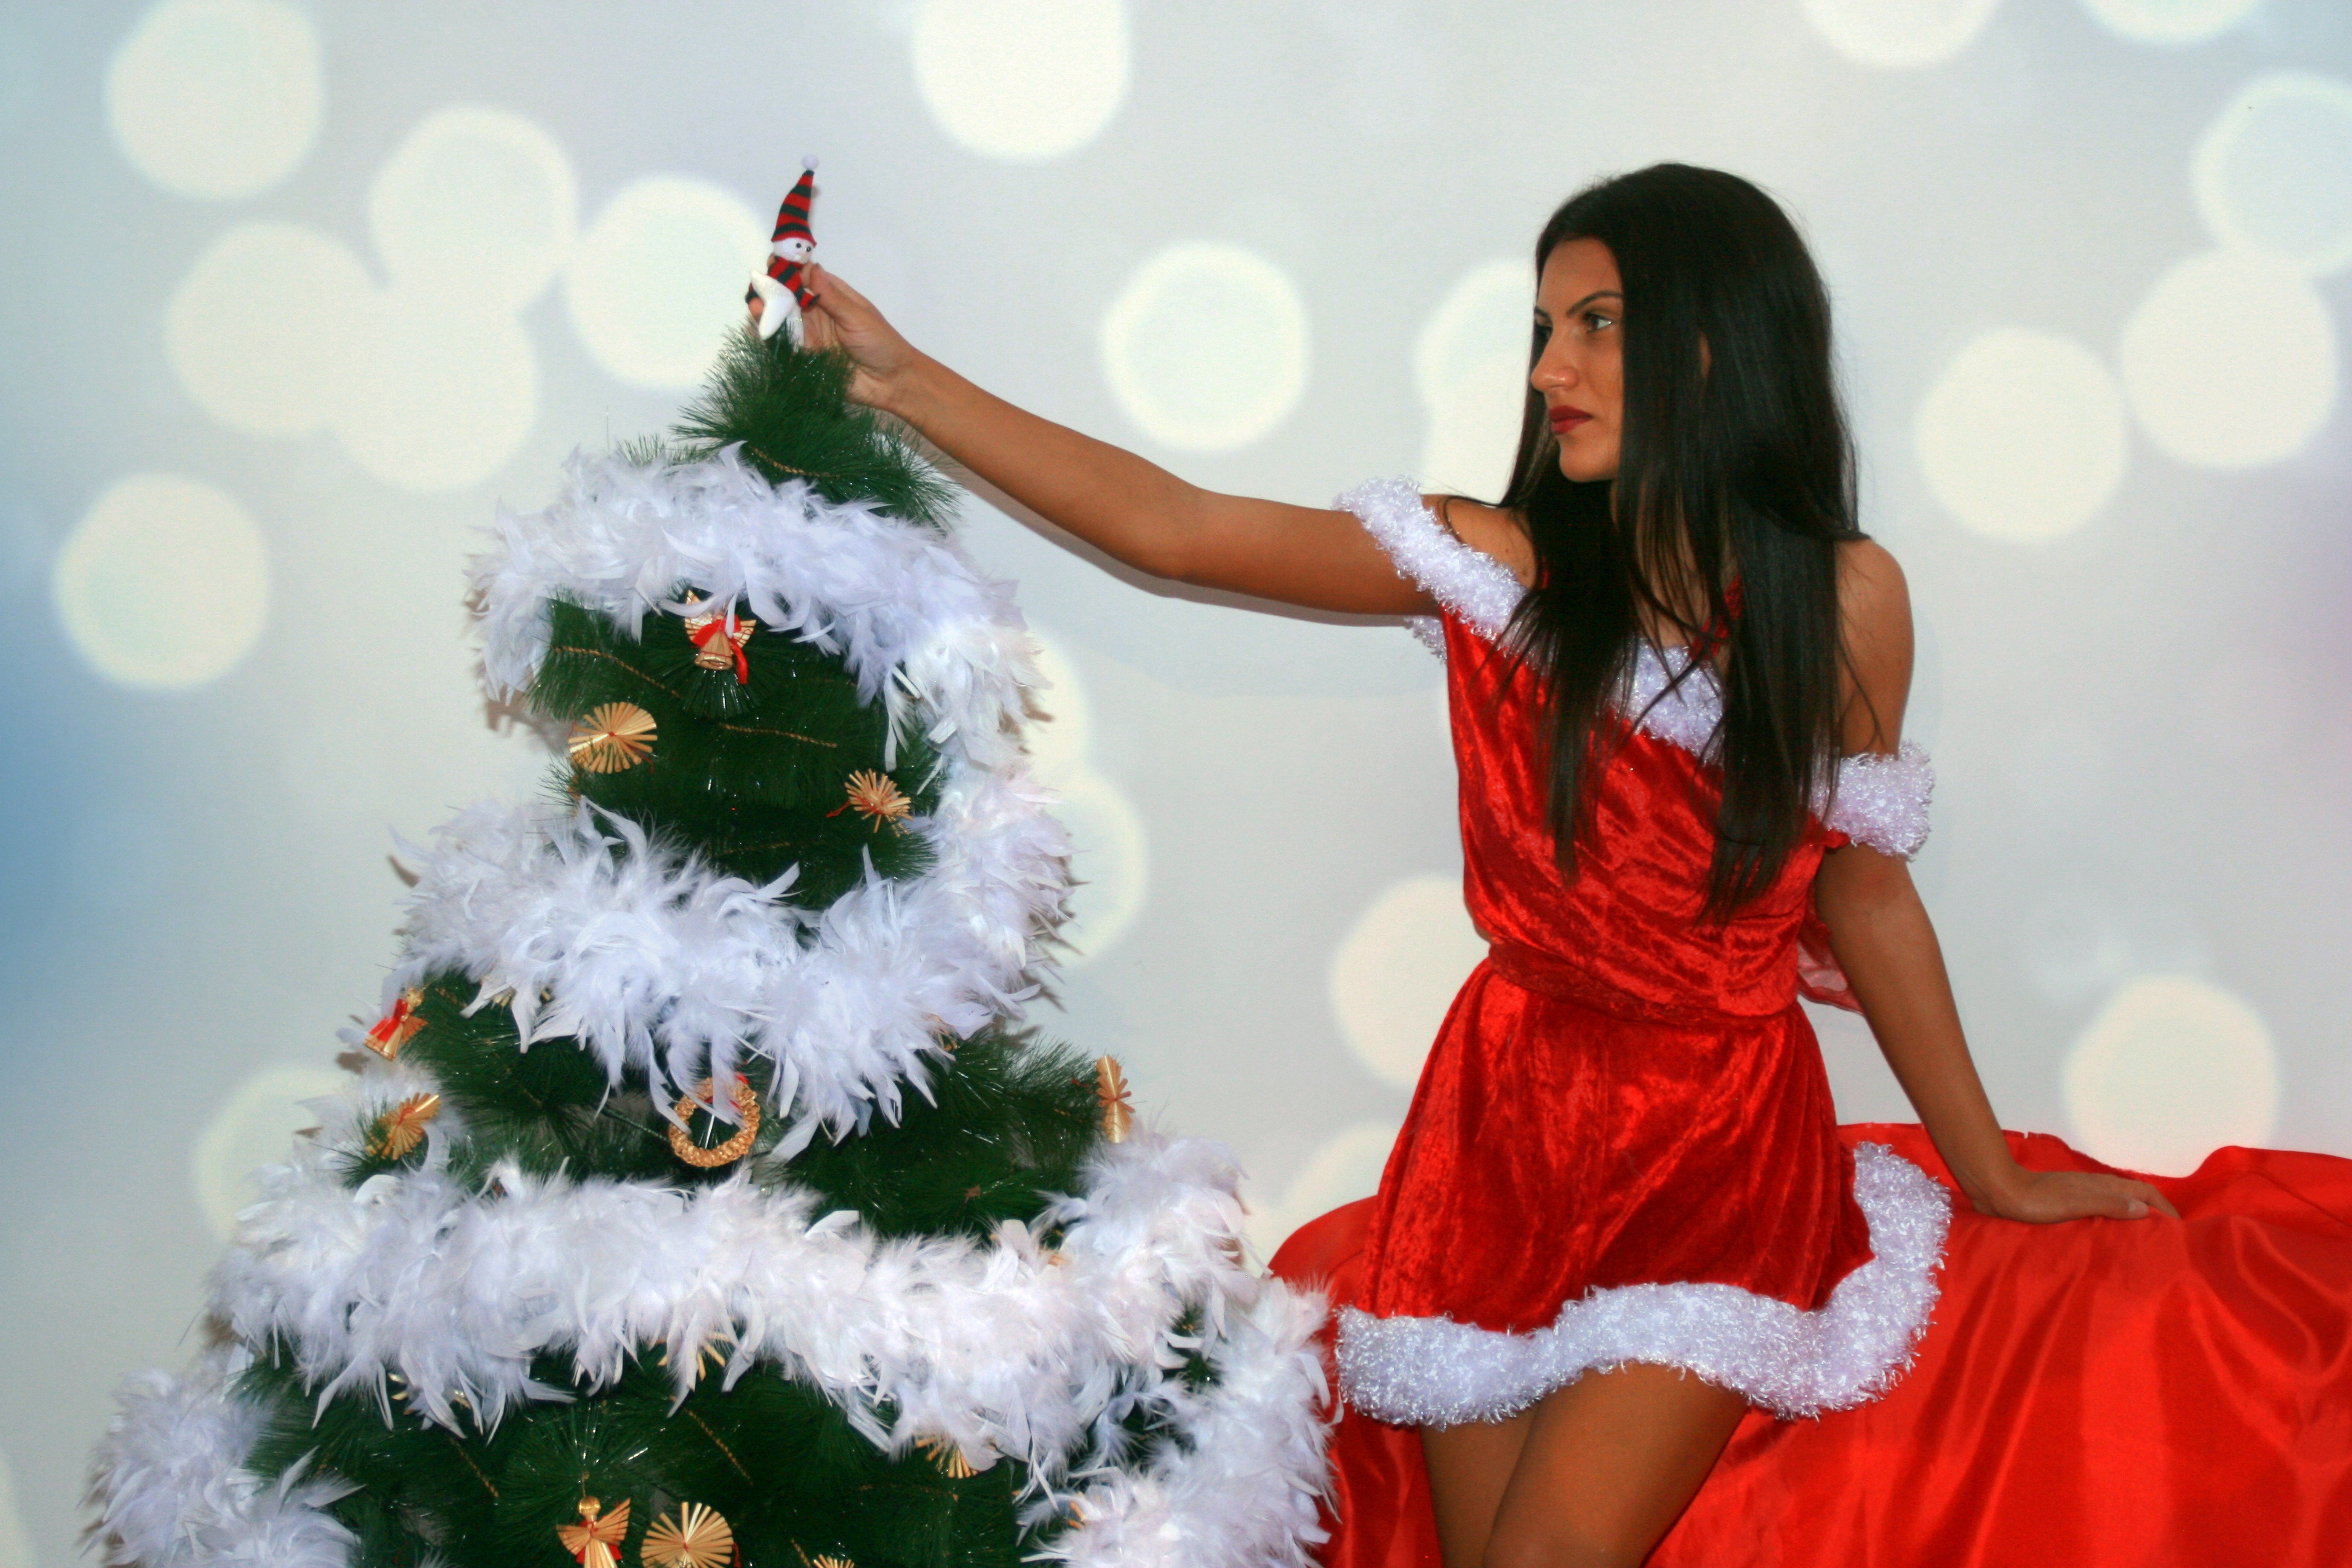 Beauty in Red, Beauty, Christmas, Girl, Pose, HQ Photo